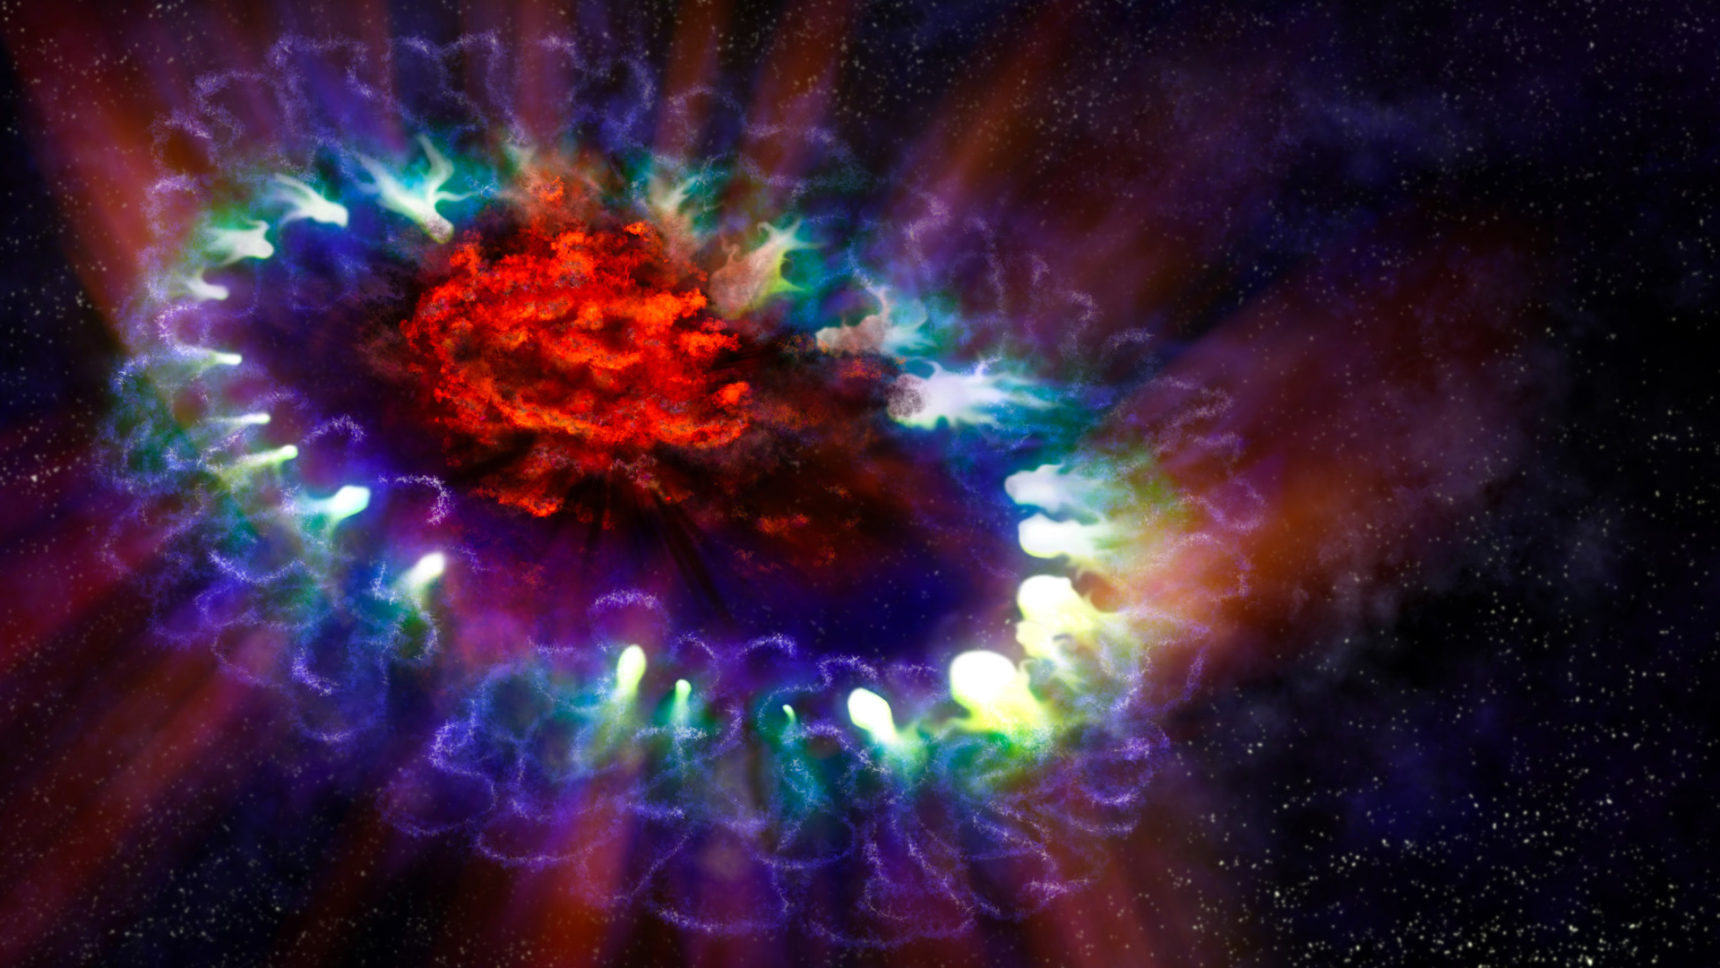 VIDEO: This animation is an artist's impression of the explosion and aftermath of supernova 1987A.